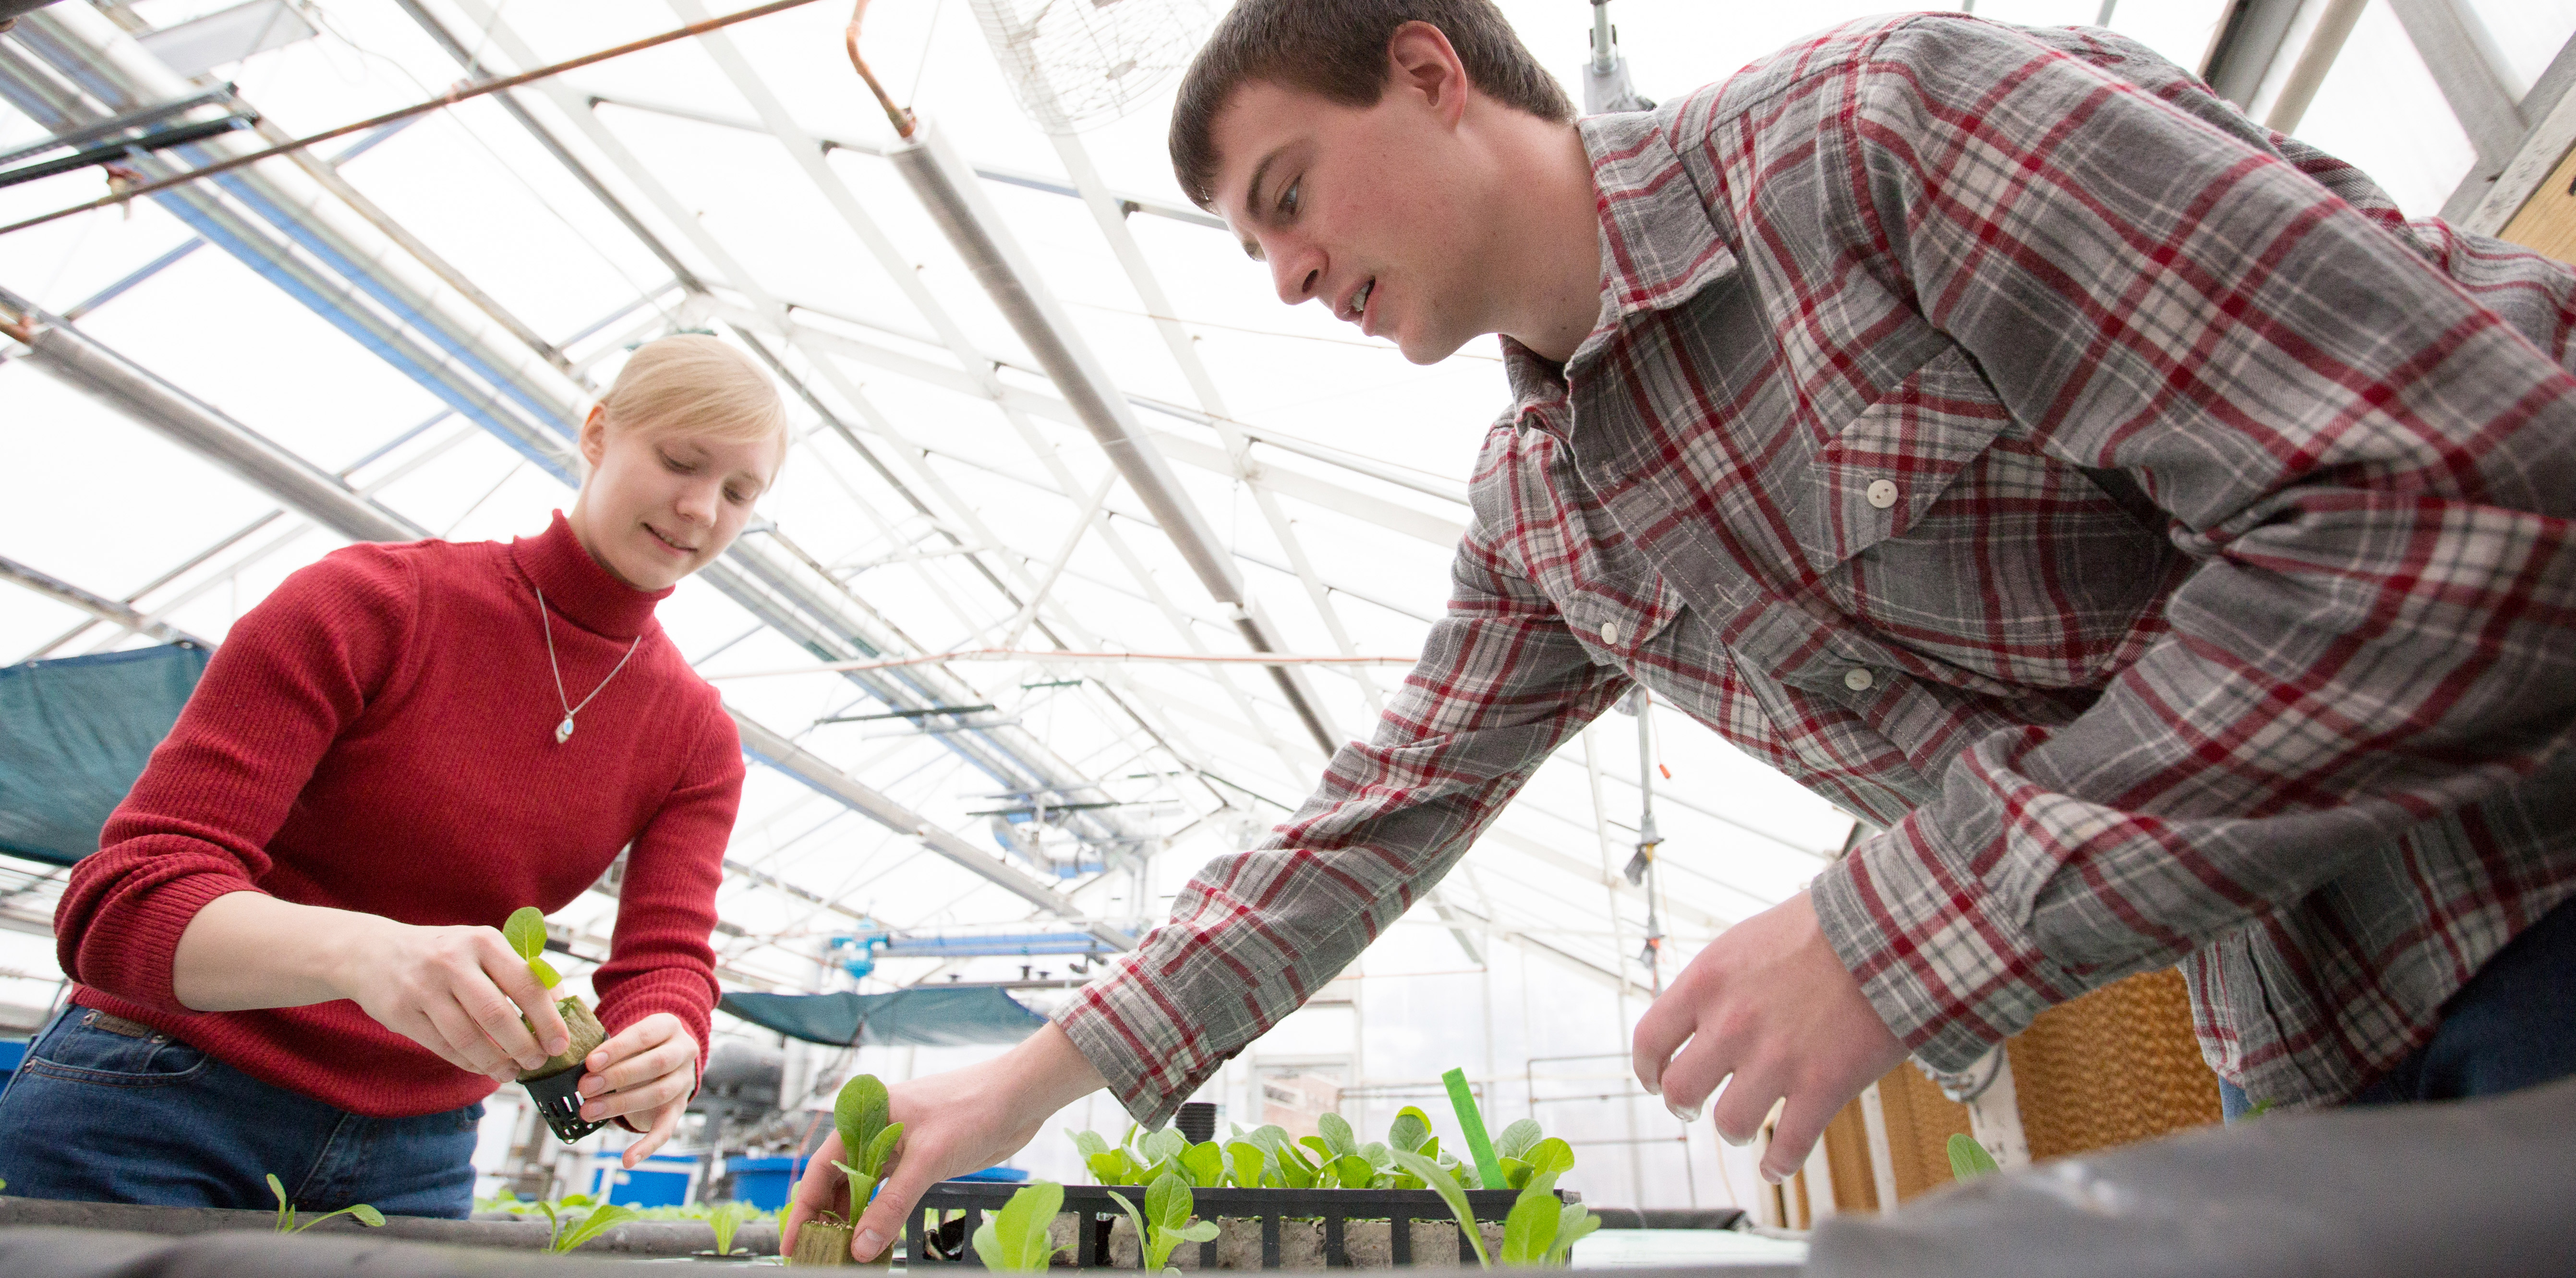 Two students in a greenhouse planting a hydroponic bed